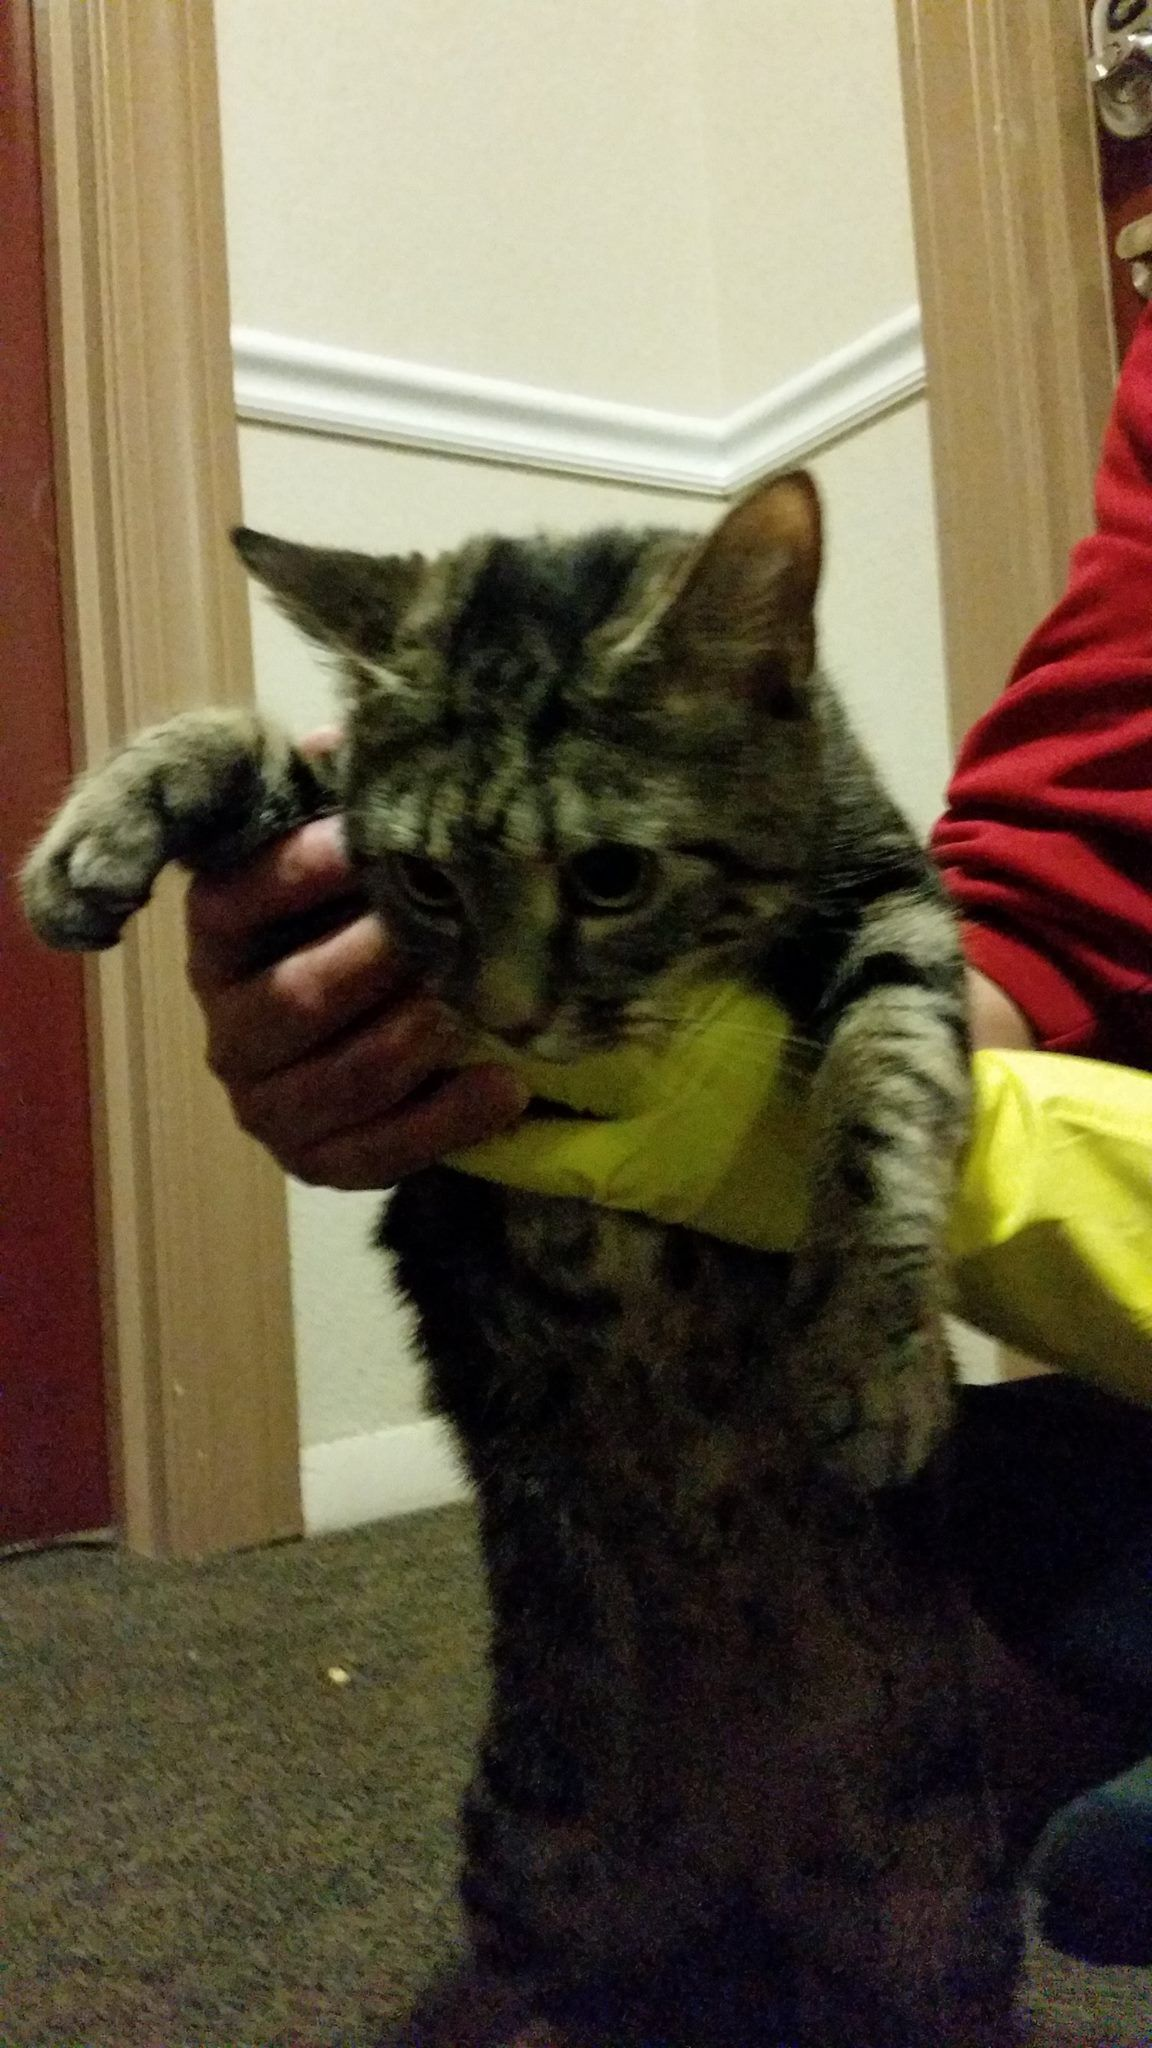 New Britain Ct My Son Found This Cat In His Building And Asked All His Neighbour If It Was Theirs They All Said No He Lives In Found Cat Cats Cat